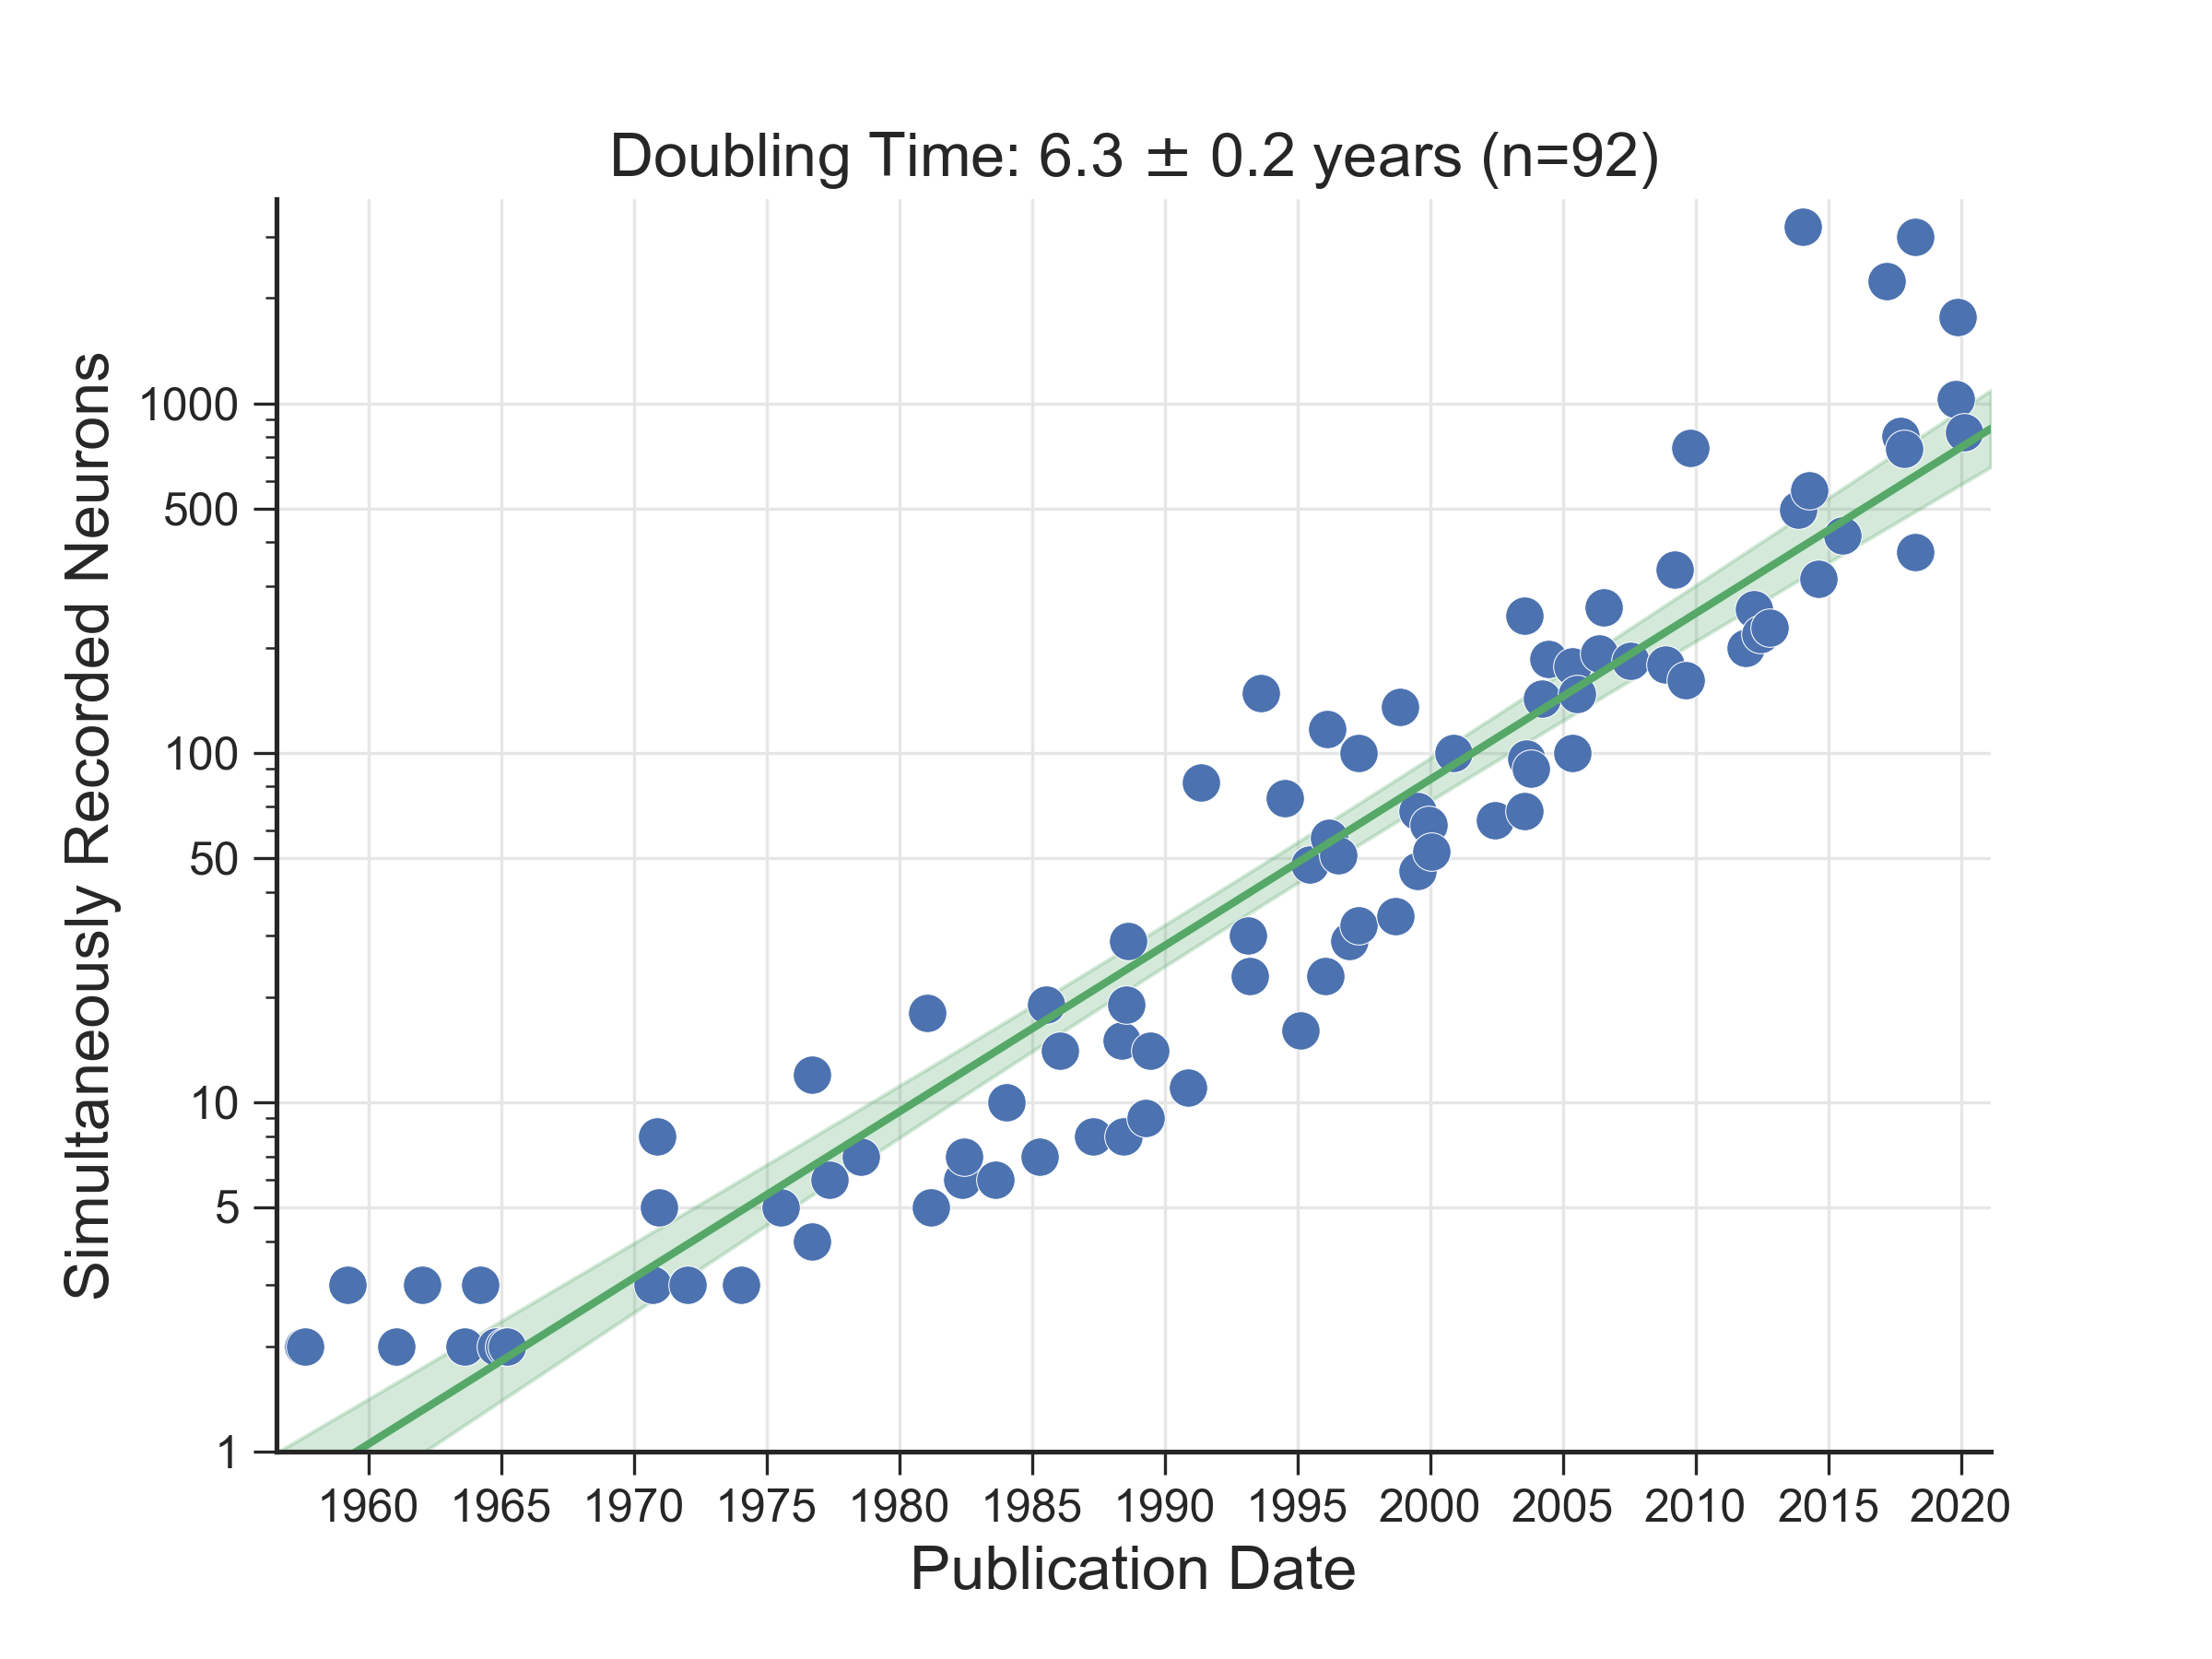 Number of simultaneously recorded neurons to double approximately every 7 years, mimicking Moore's law.